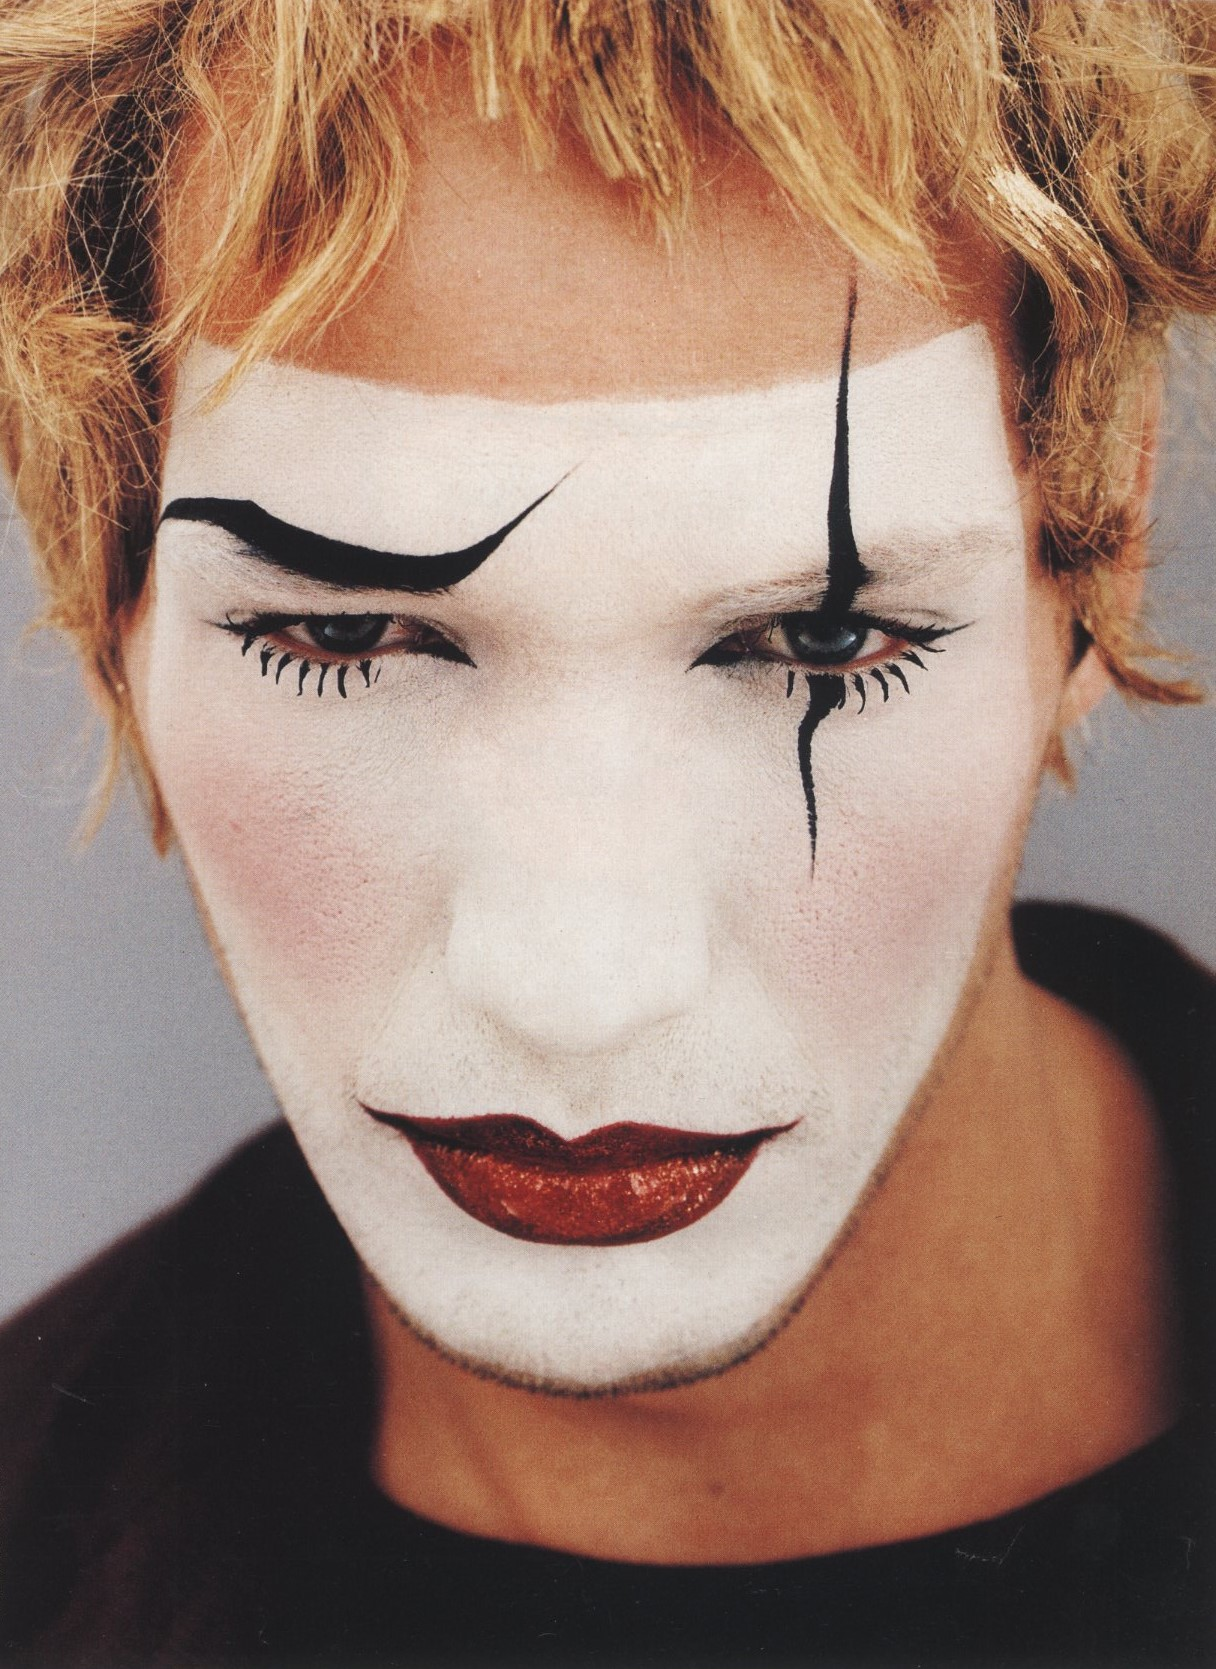 FACES TO FACES PHOTOGRAPHY JEAN-BAPTISTE MONDINO VOGUE HOMMES INTERNATIONAL MODE 18 FALL/WINTER 1993